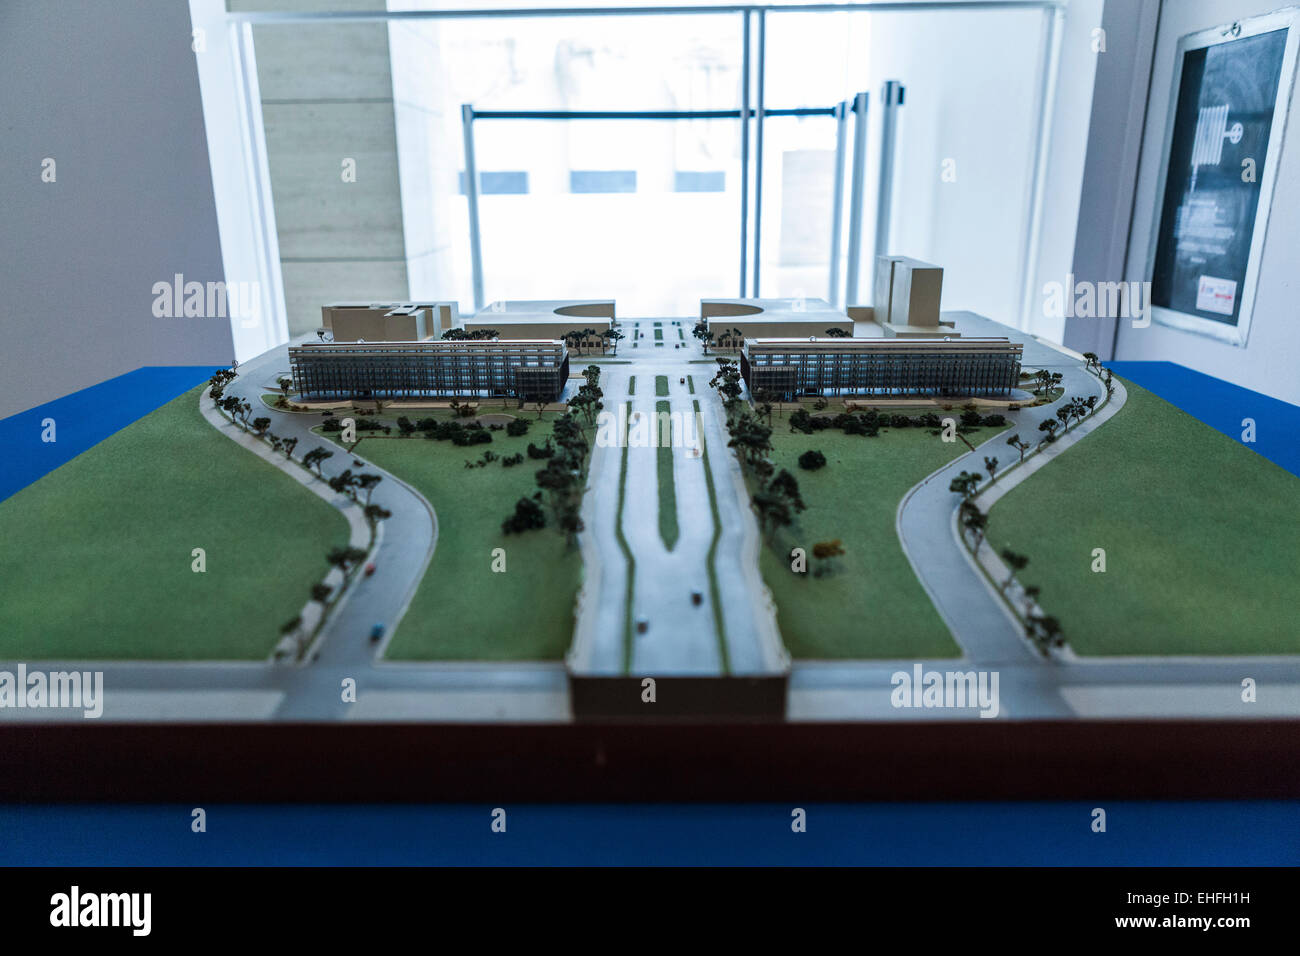 Architect's model of the E42 EUR area in Rome Stock Photo